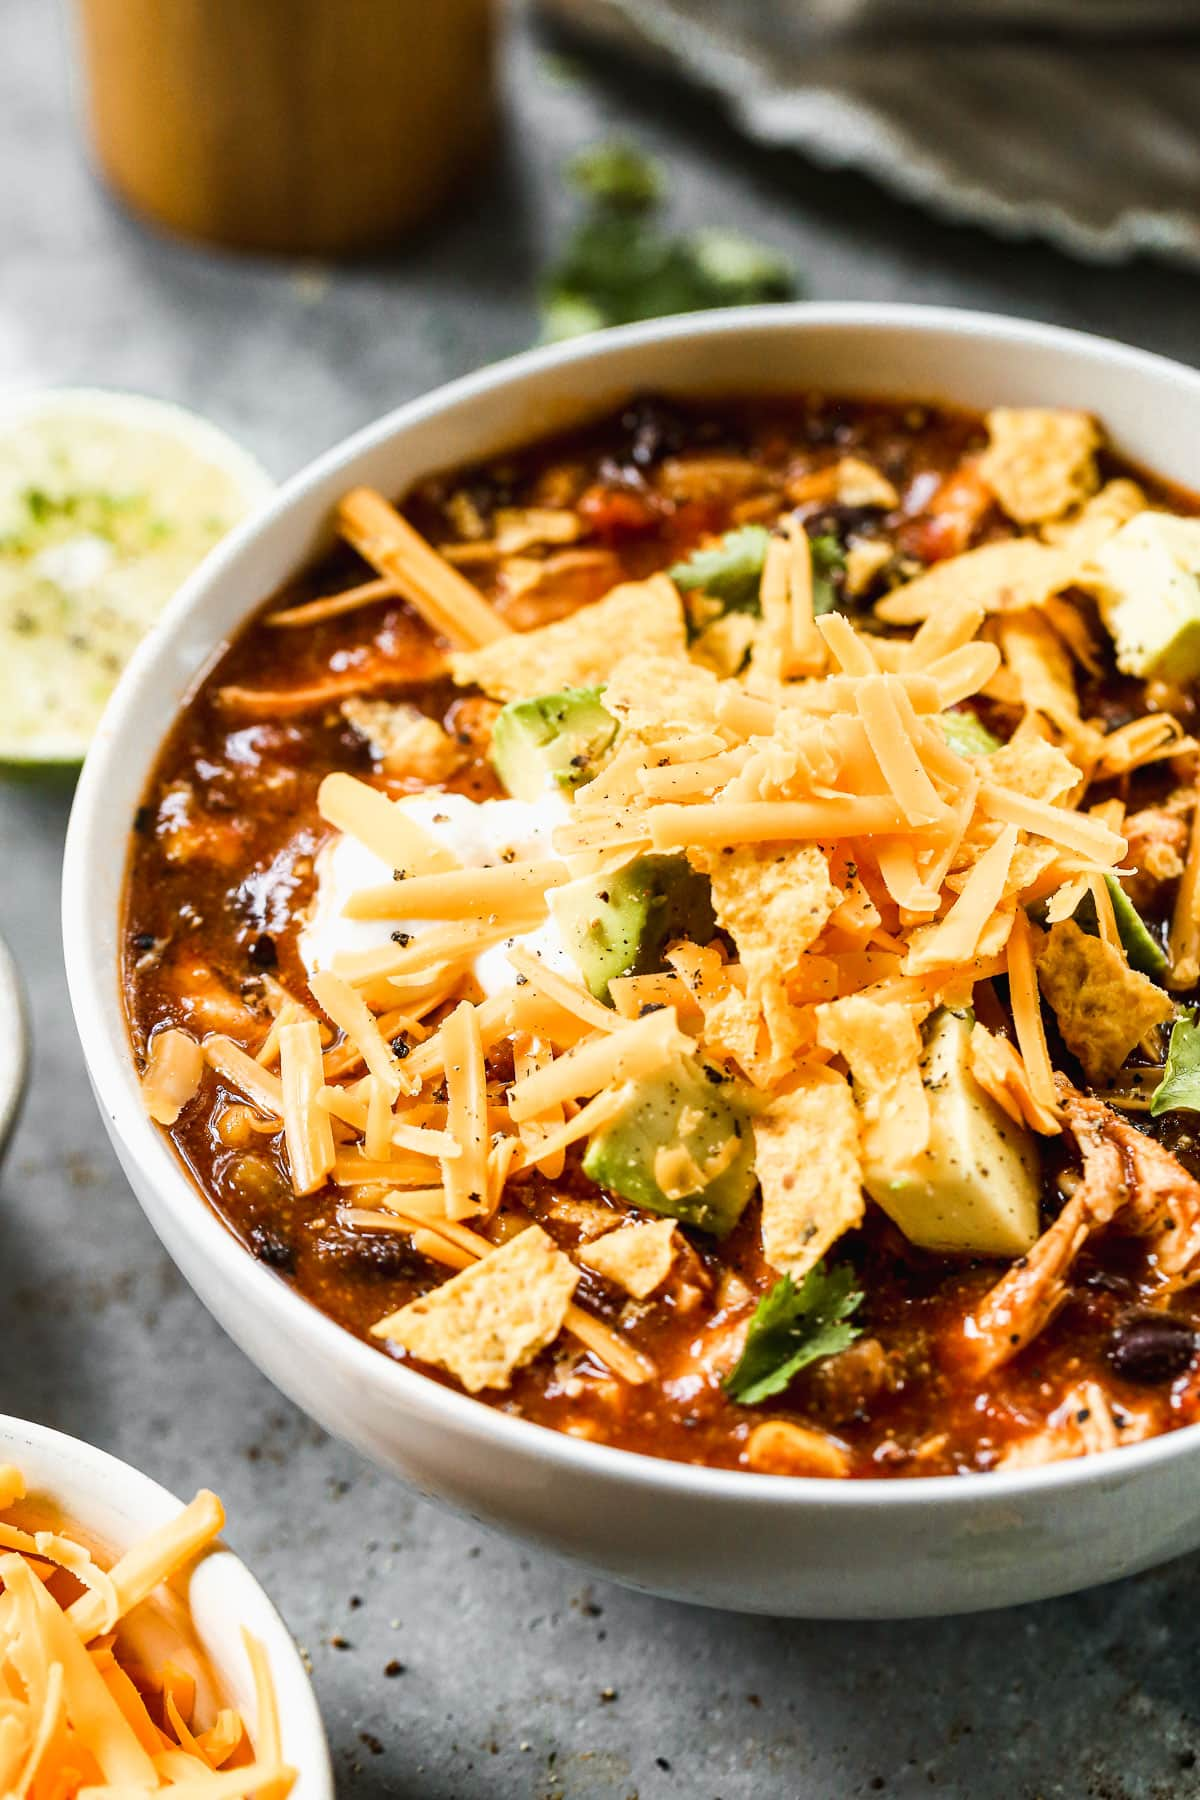 Easy, healthy slow cooker enchilada soup. Our entire family loves this recipe, and it only takes 10 minutes to prep!